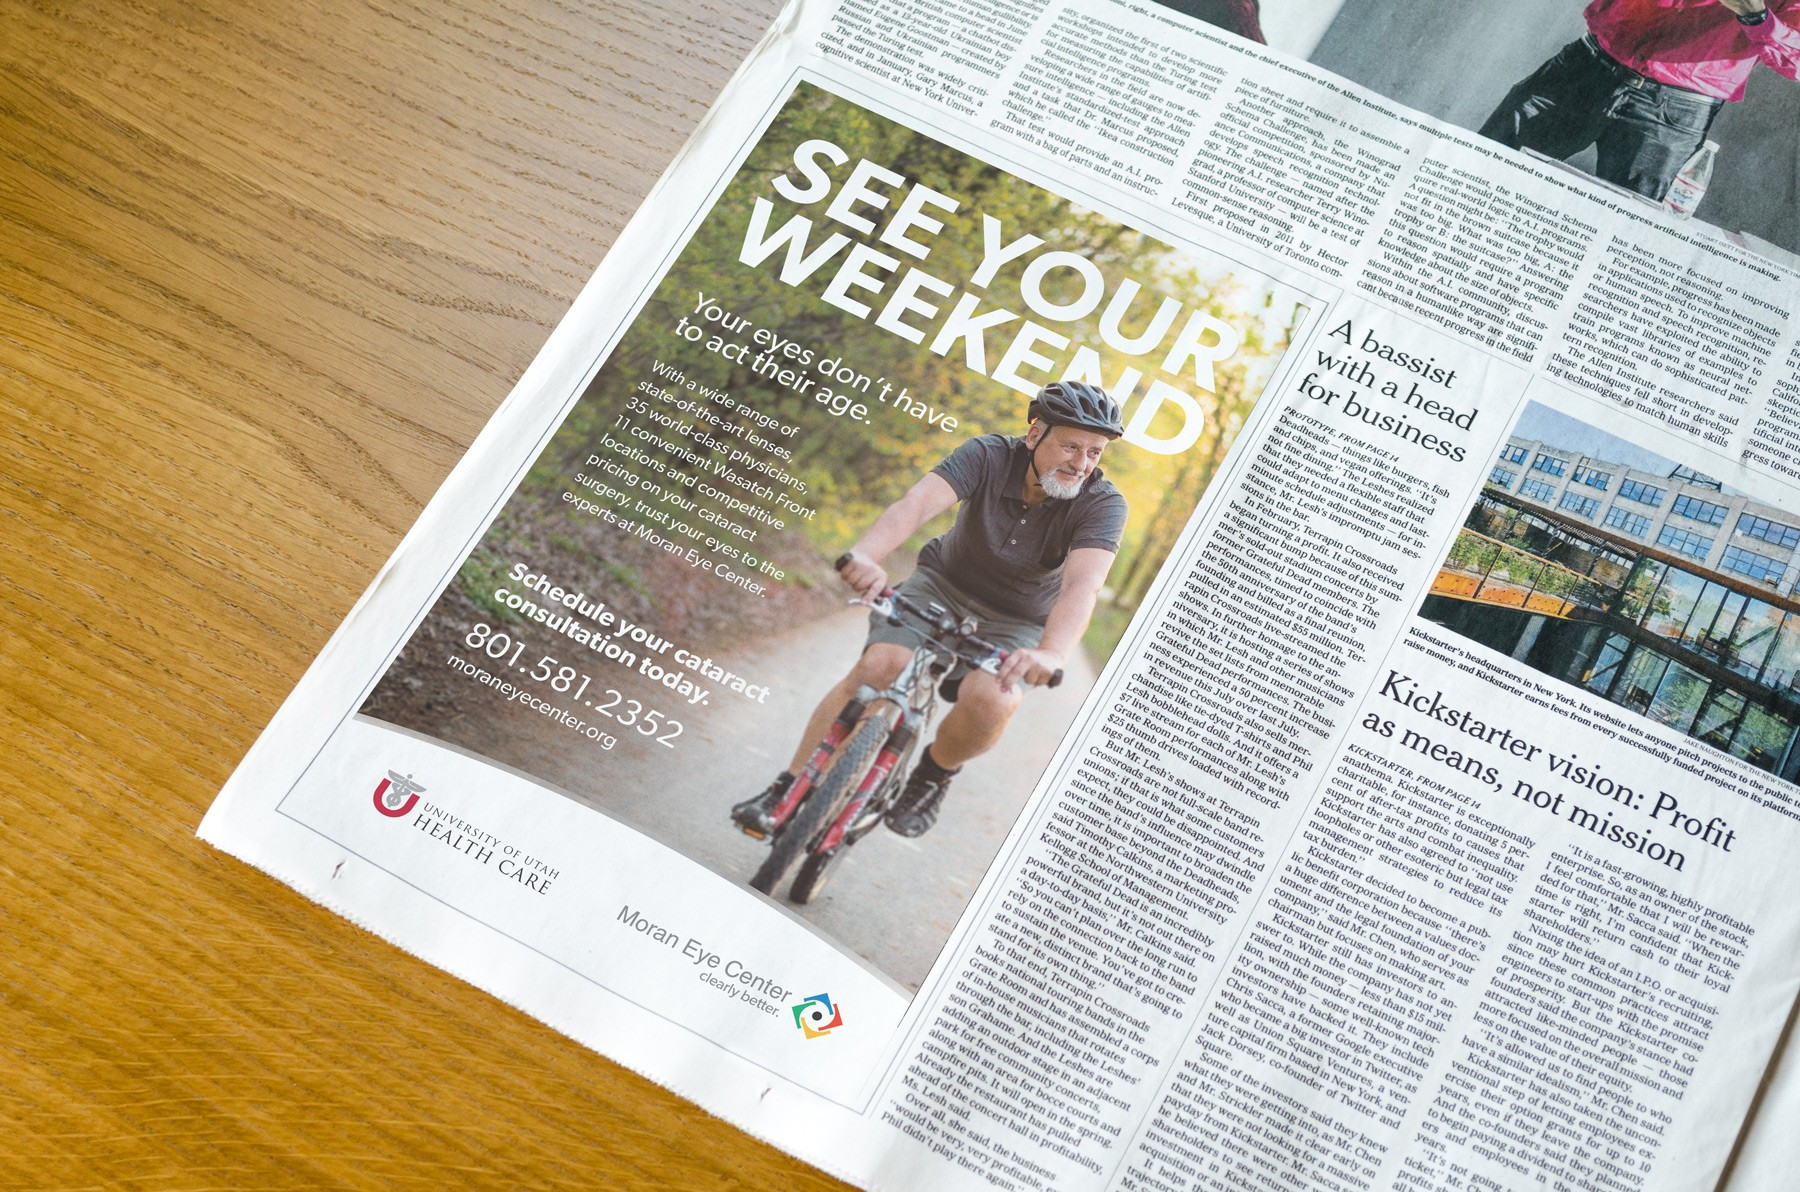 Photo of newspapaer with Moran Eye Center advertisment